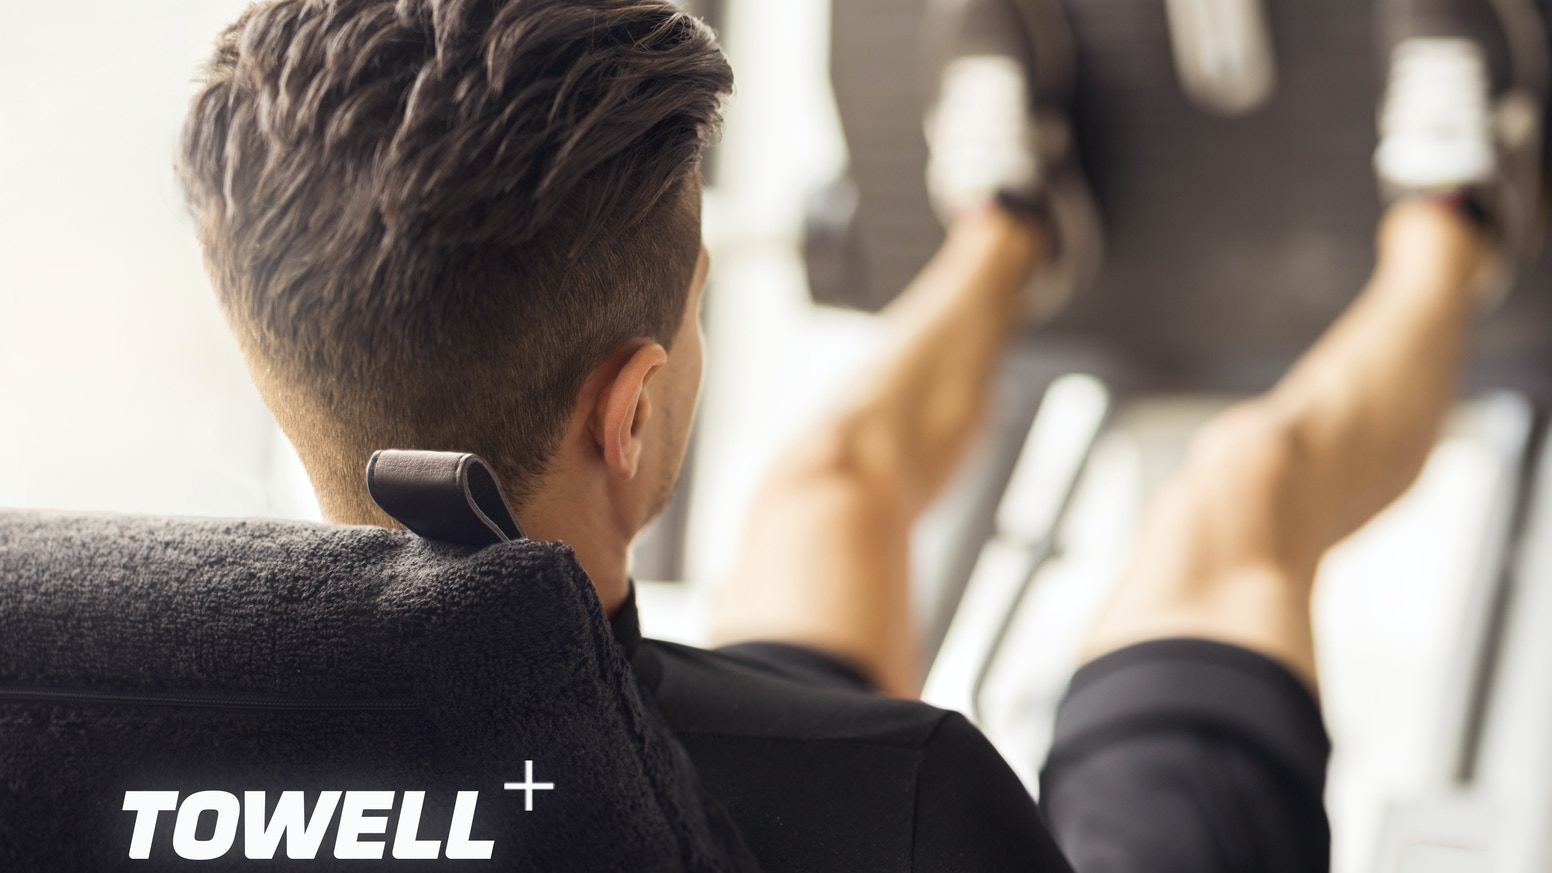 Be individual - get better. The worlds most personal work out accessory just got reinvented.